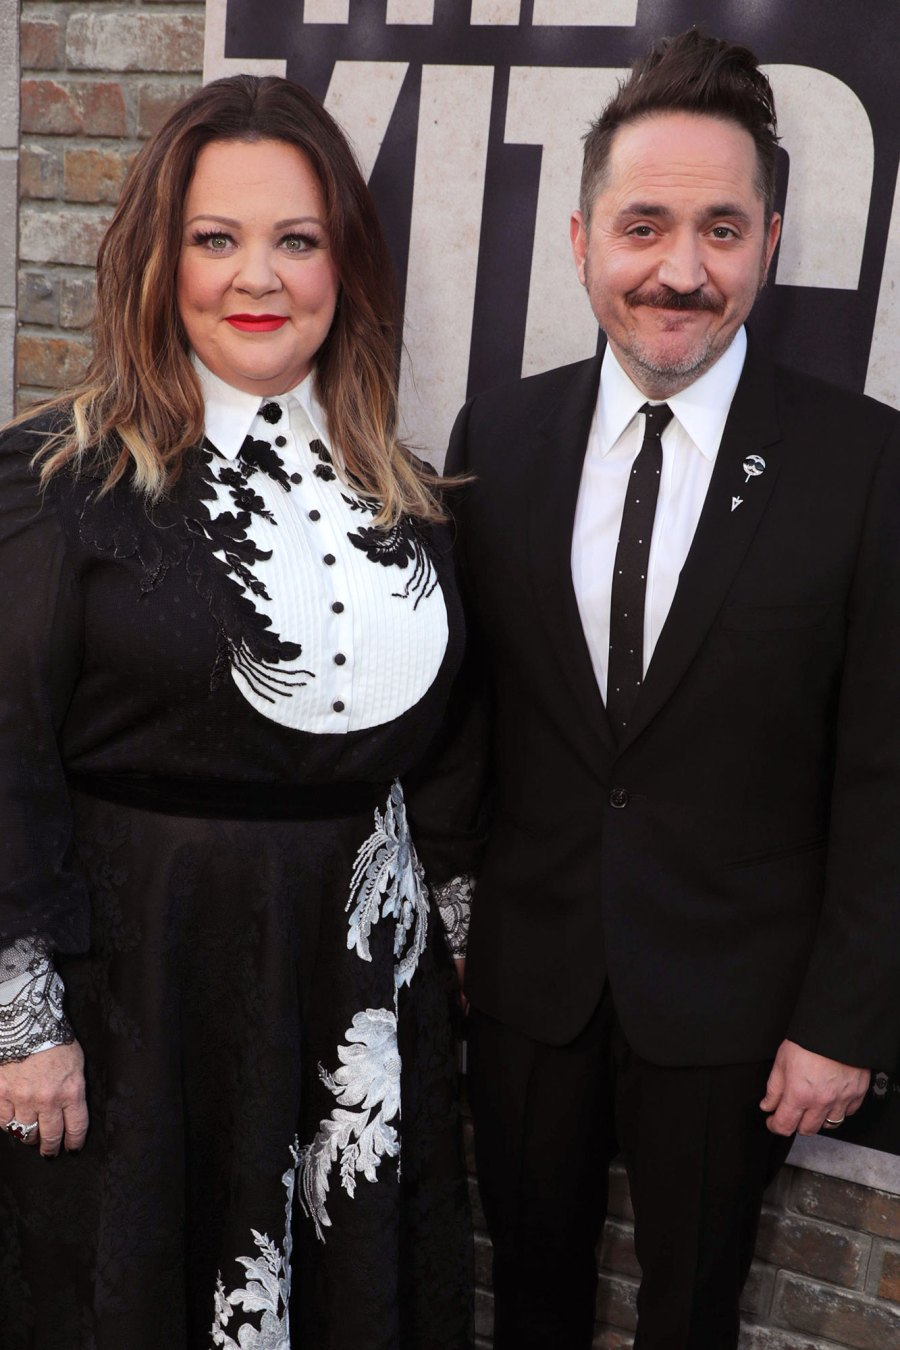 Melissa McCarthy and Ben Falcone Stars Who Give Back to Charity